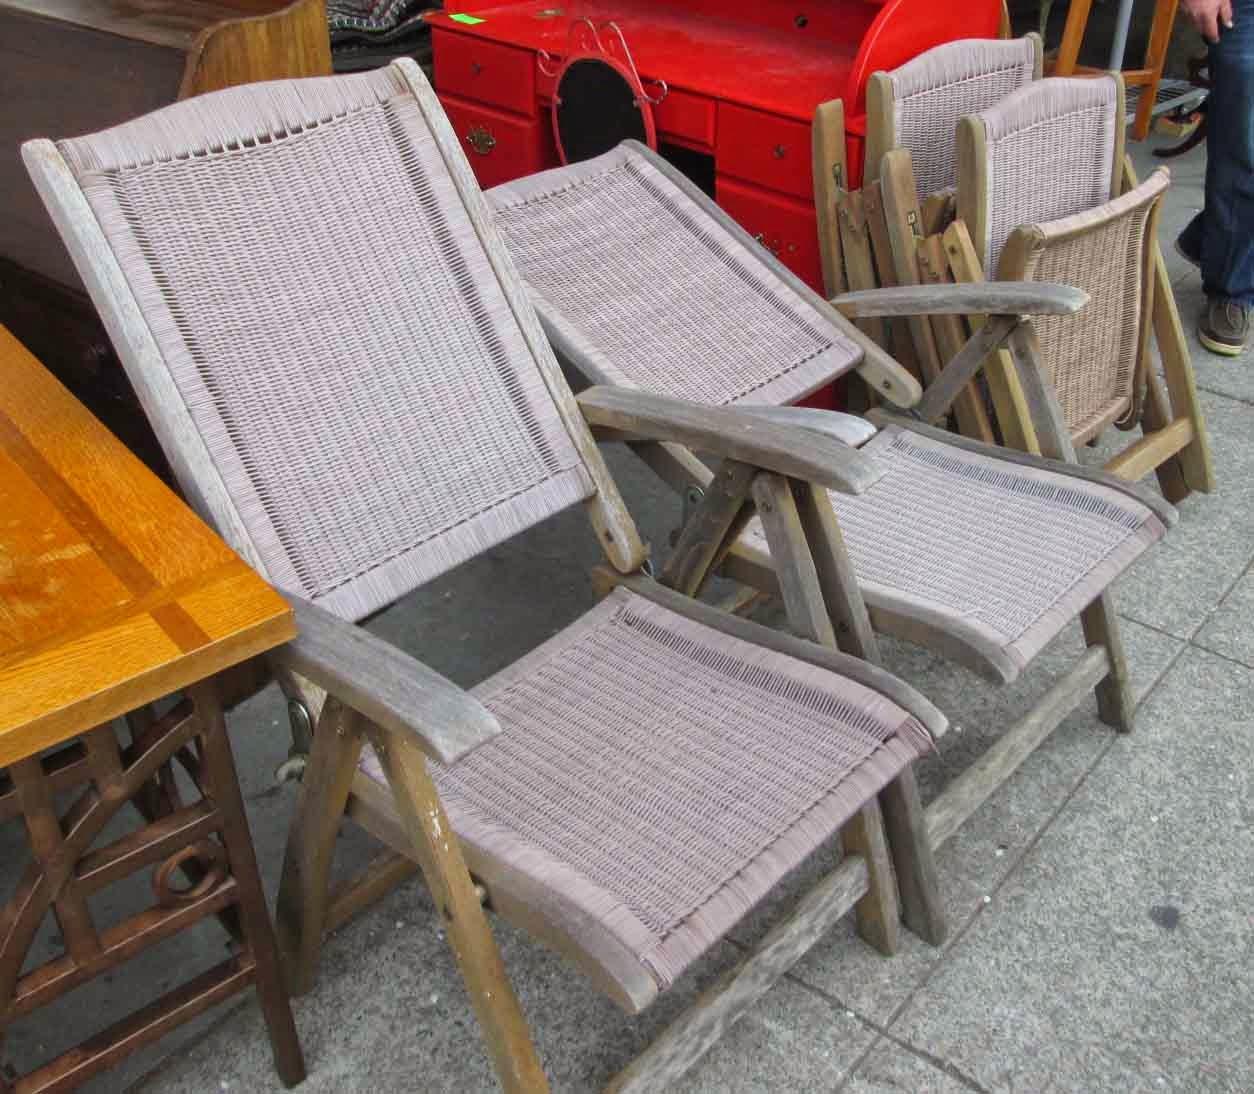 Plow And Hearth Furniture: UHURU FURNITURE & COLLECTIBLES: SOLD Set Of 4 Adjustable